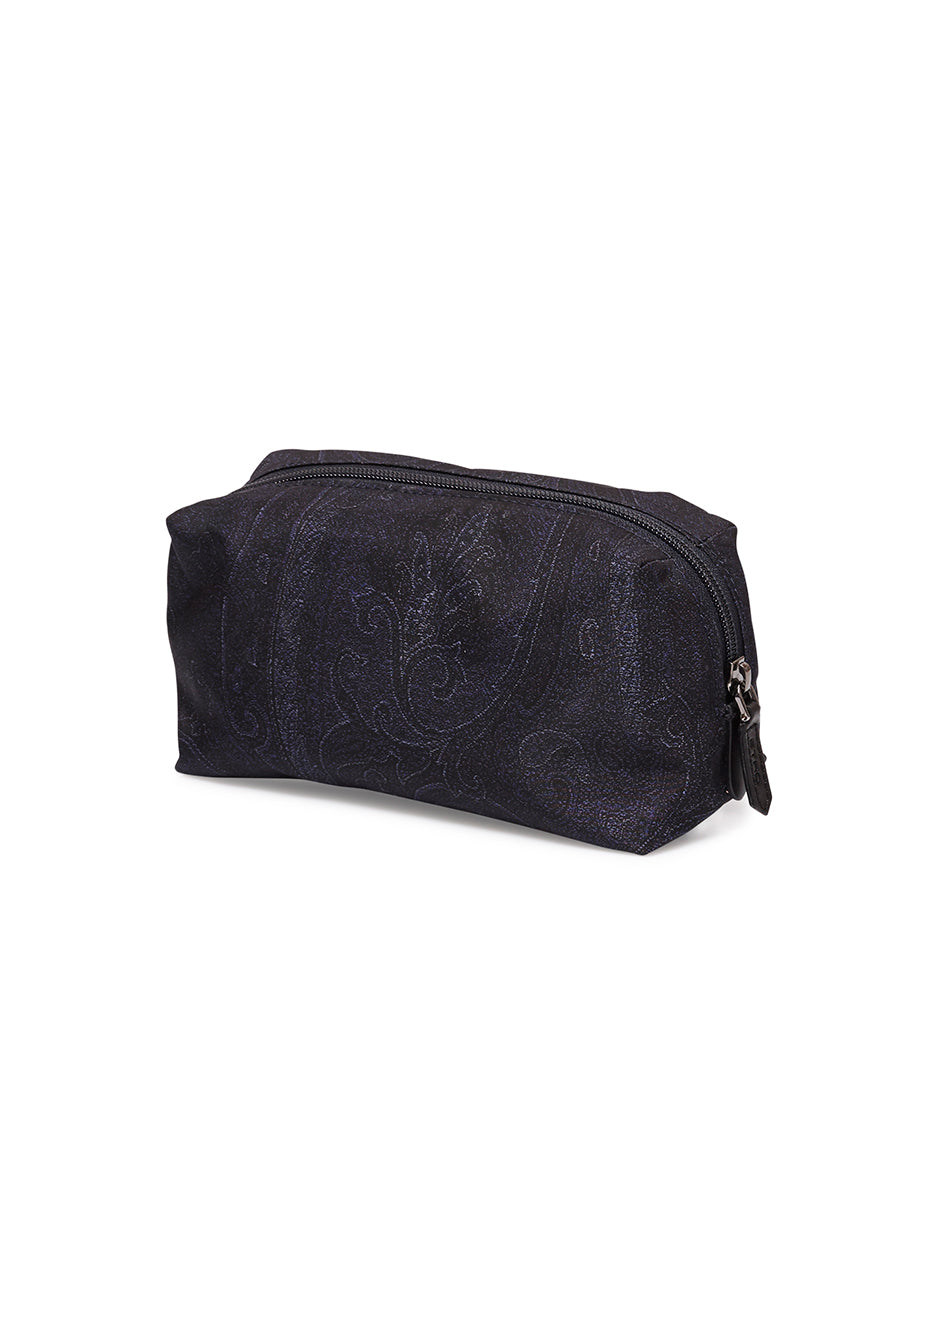 Paisley Toiletry Bag - Small